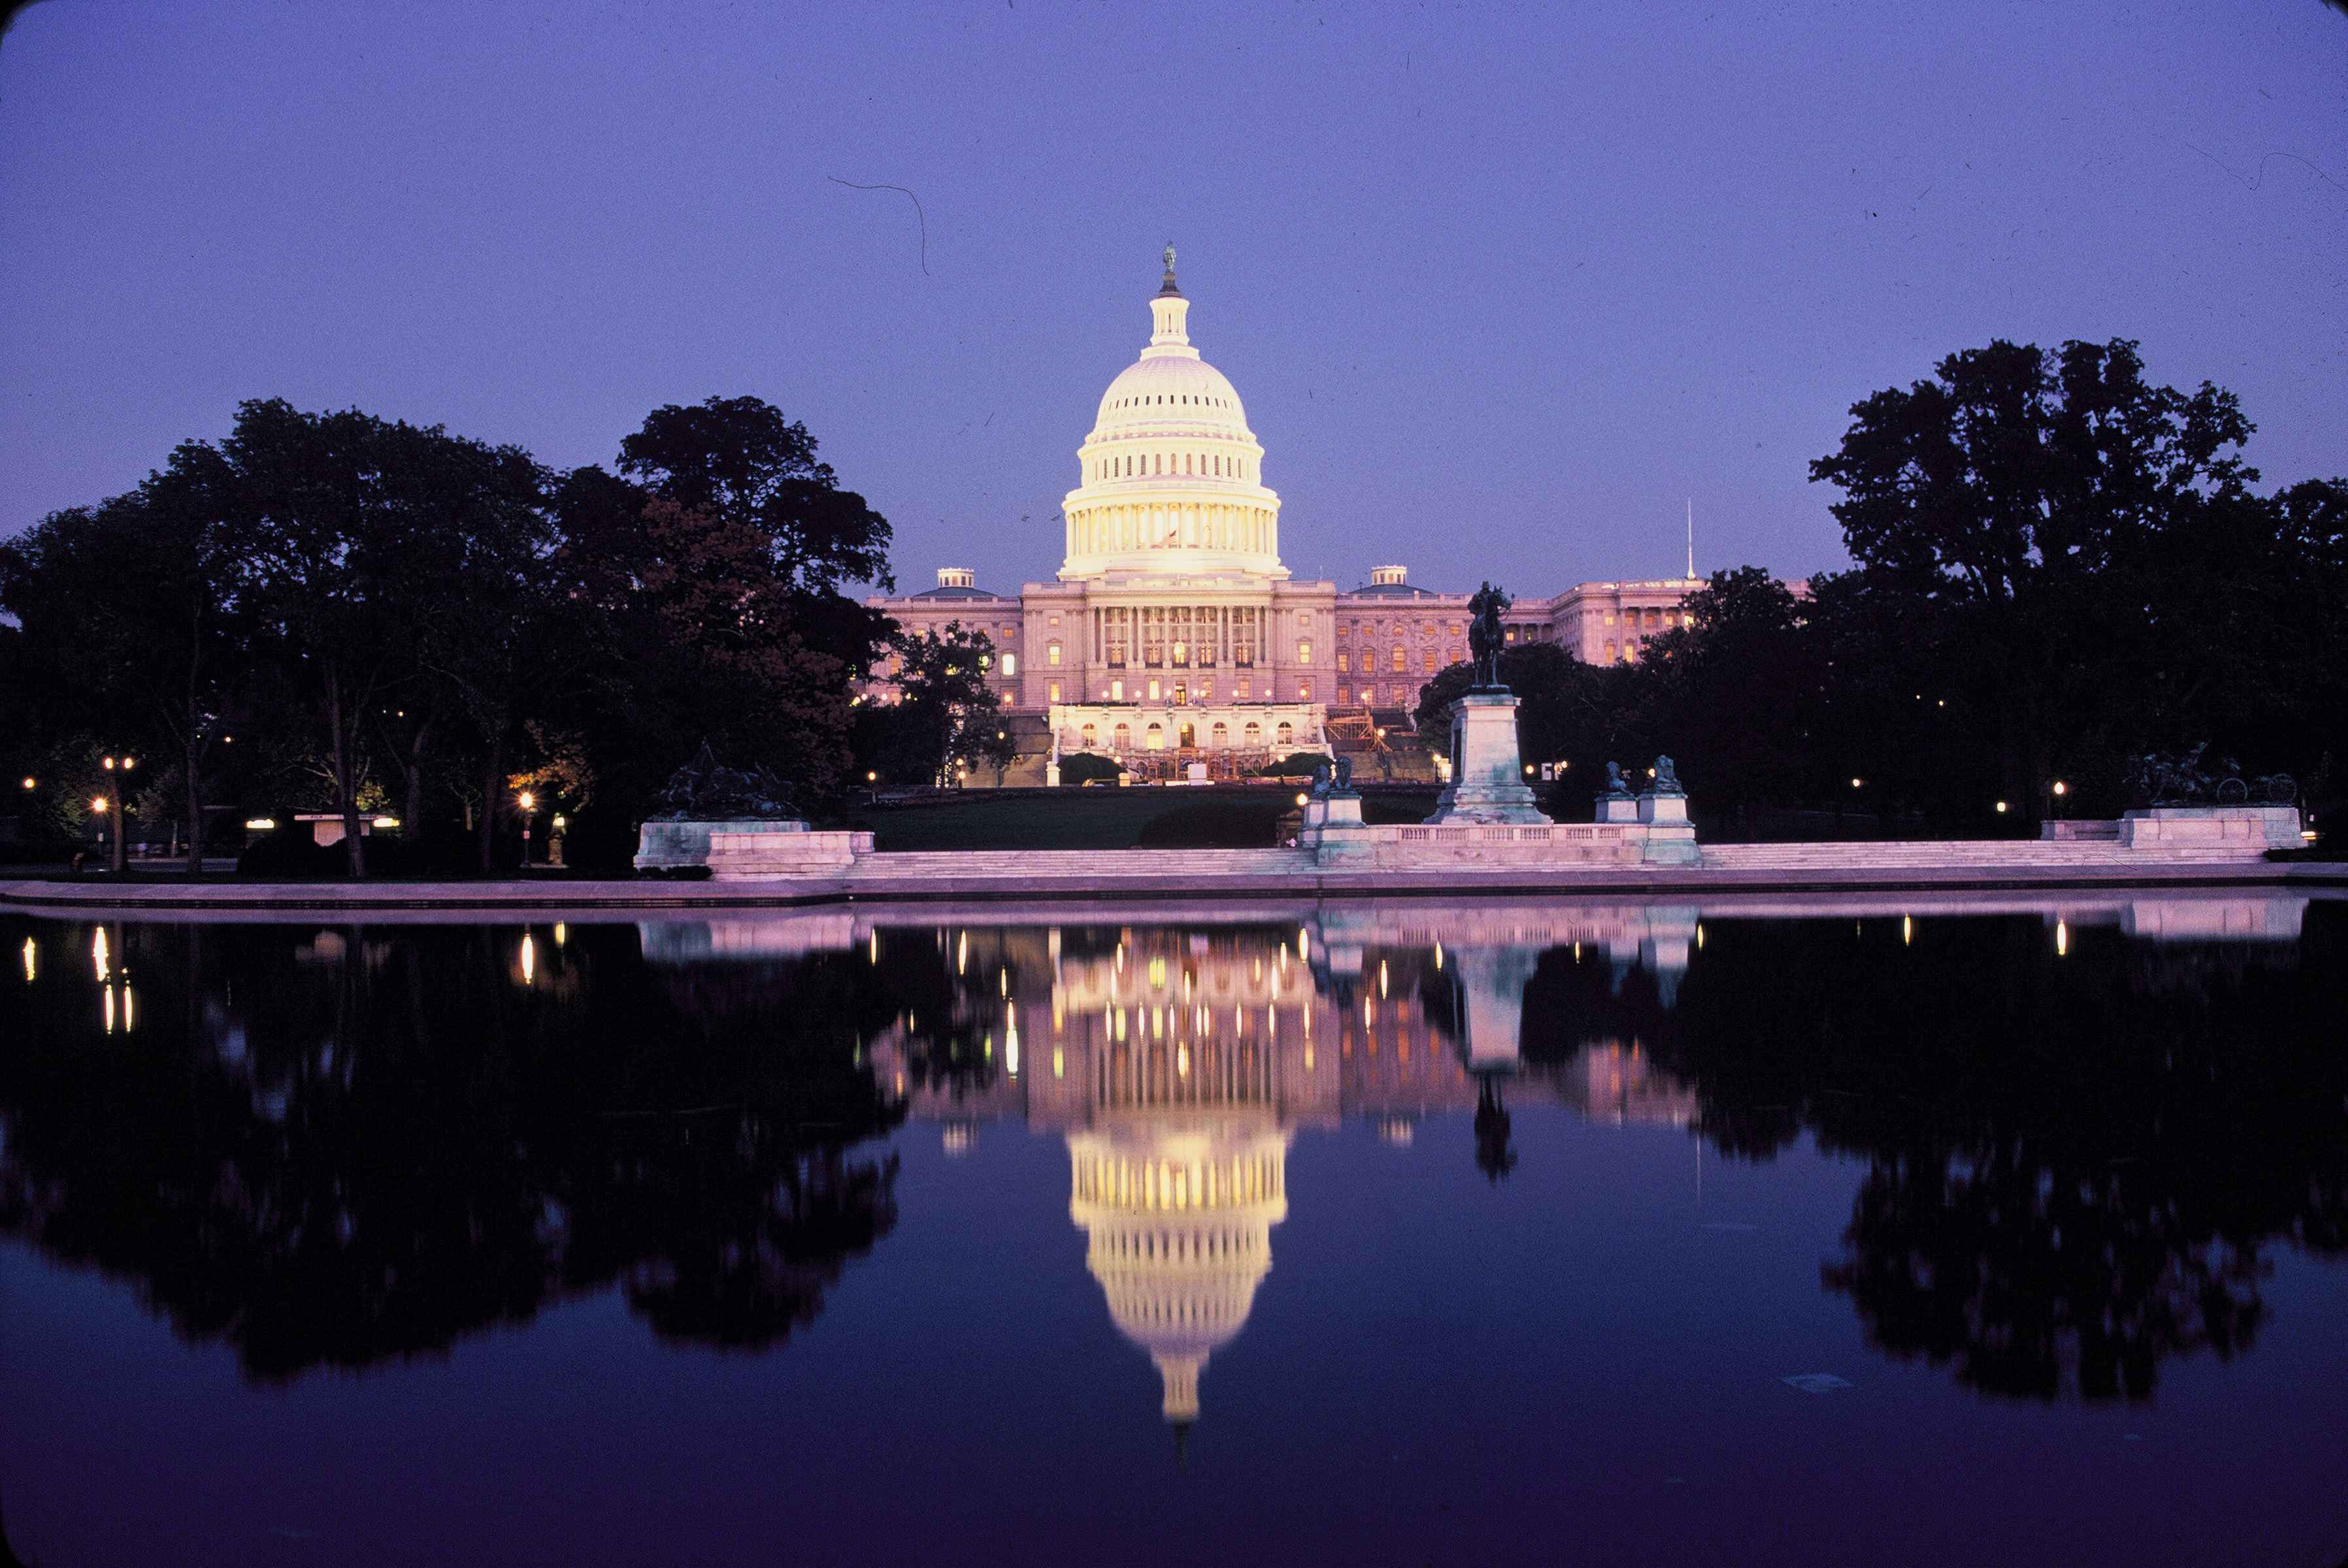 united-states-capitol-at-night-illuminated-with-decorative-lights.jpg